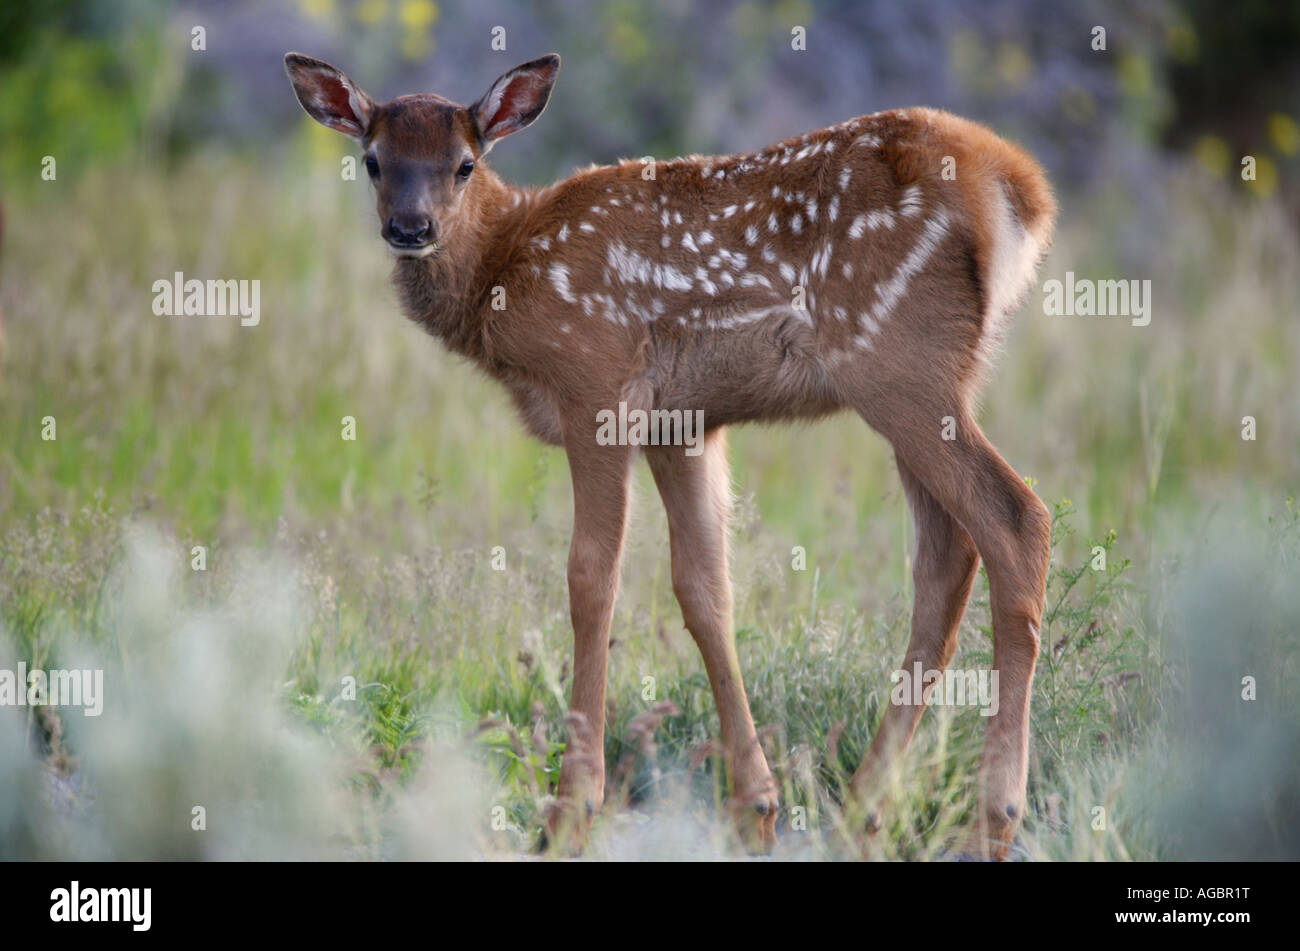 Bébé wapiti dans le Parc National de Yellowstone au Wyoming Photo Stock